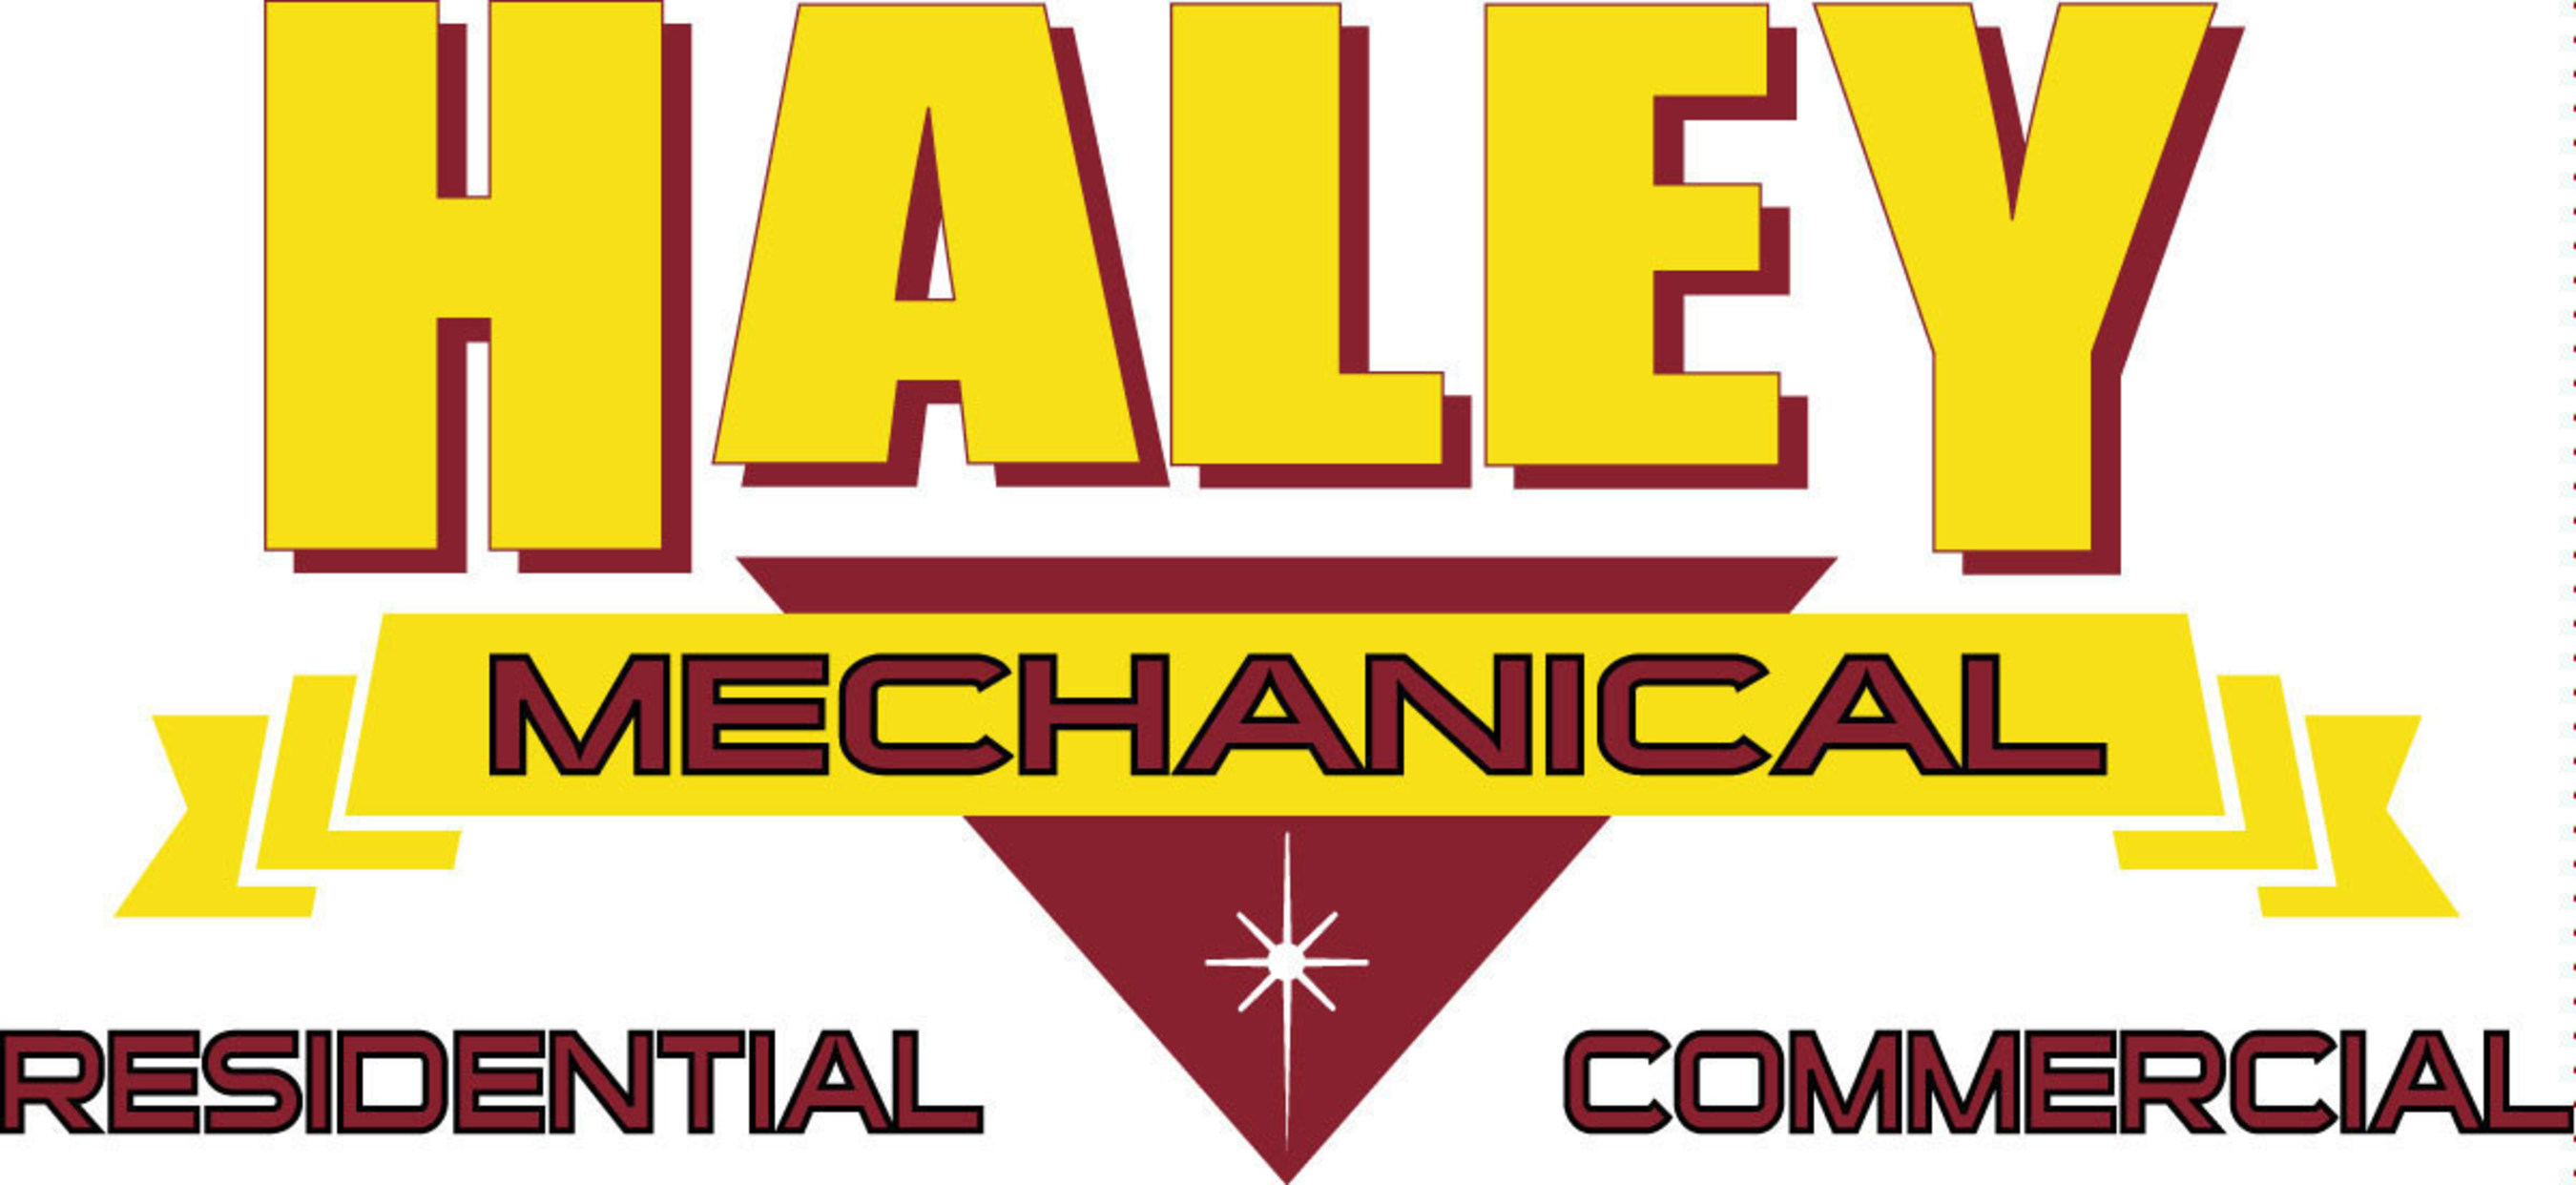 Haley Mechanical, Ann Arbor, Michigan HVAC Contractor Earns Esteemed Super Service Award from